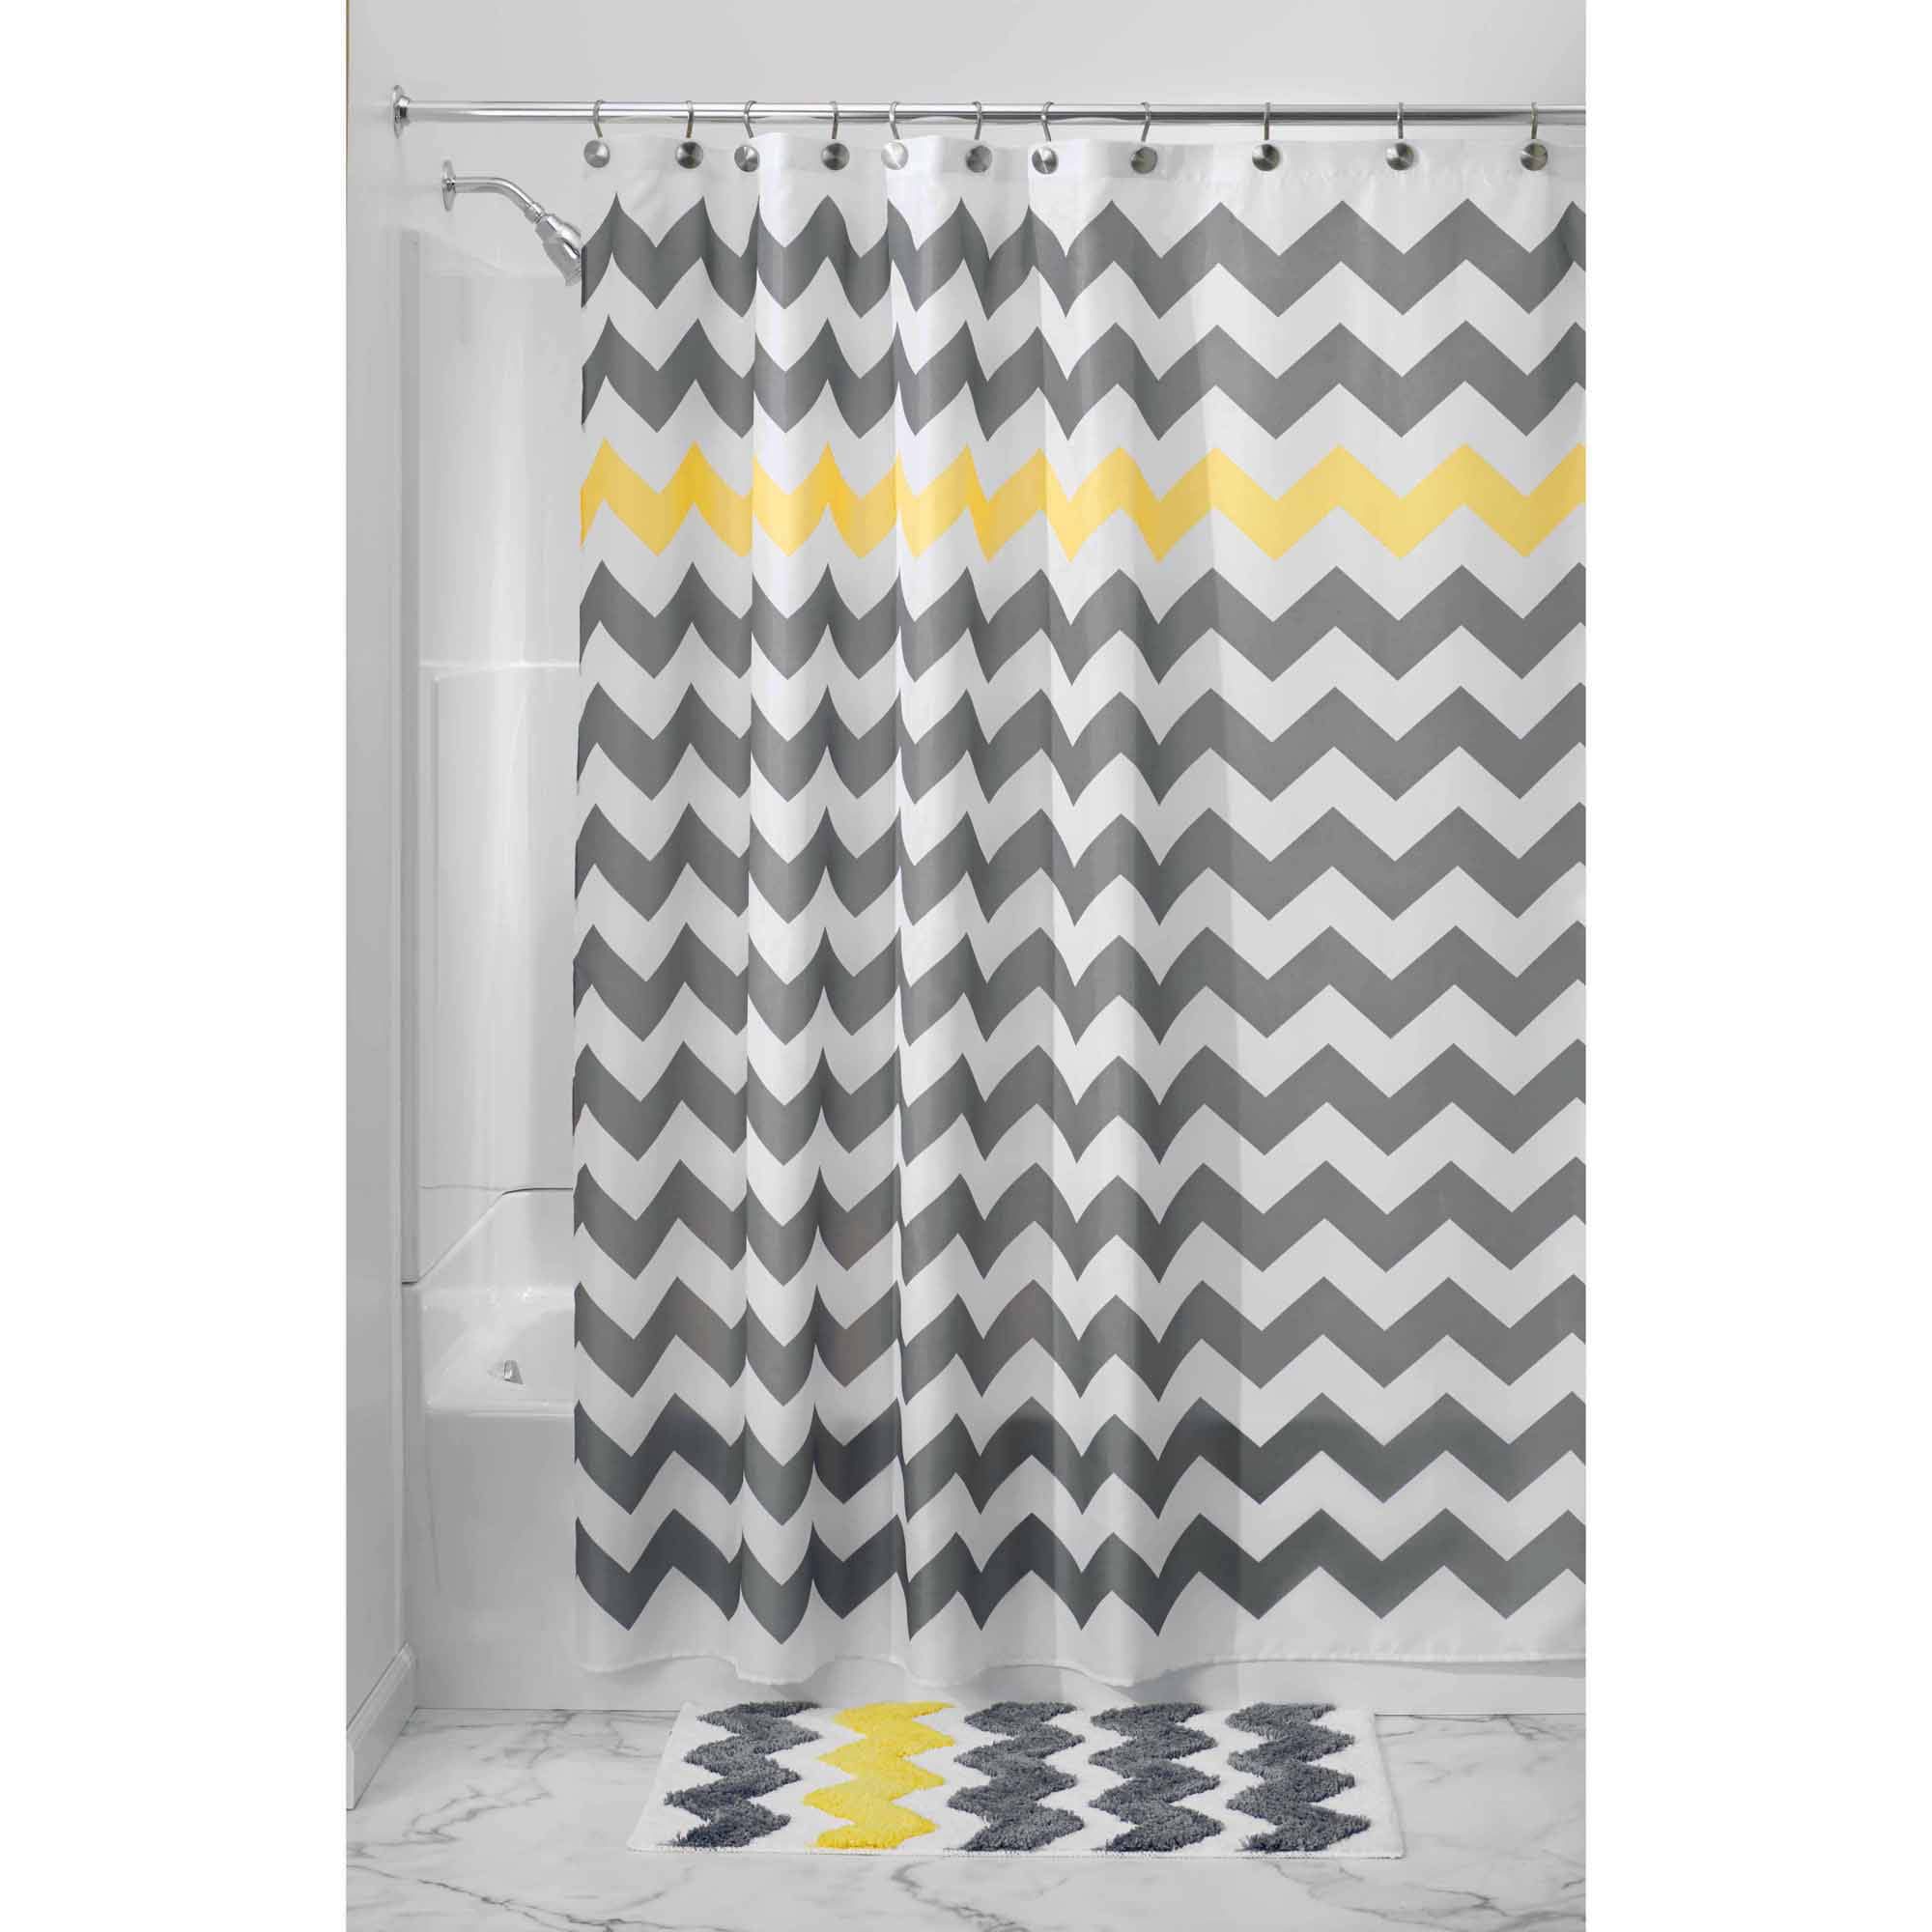 InterDesign Chevron Fabric Shower Curtain Various Sizes Colors